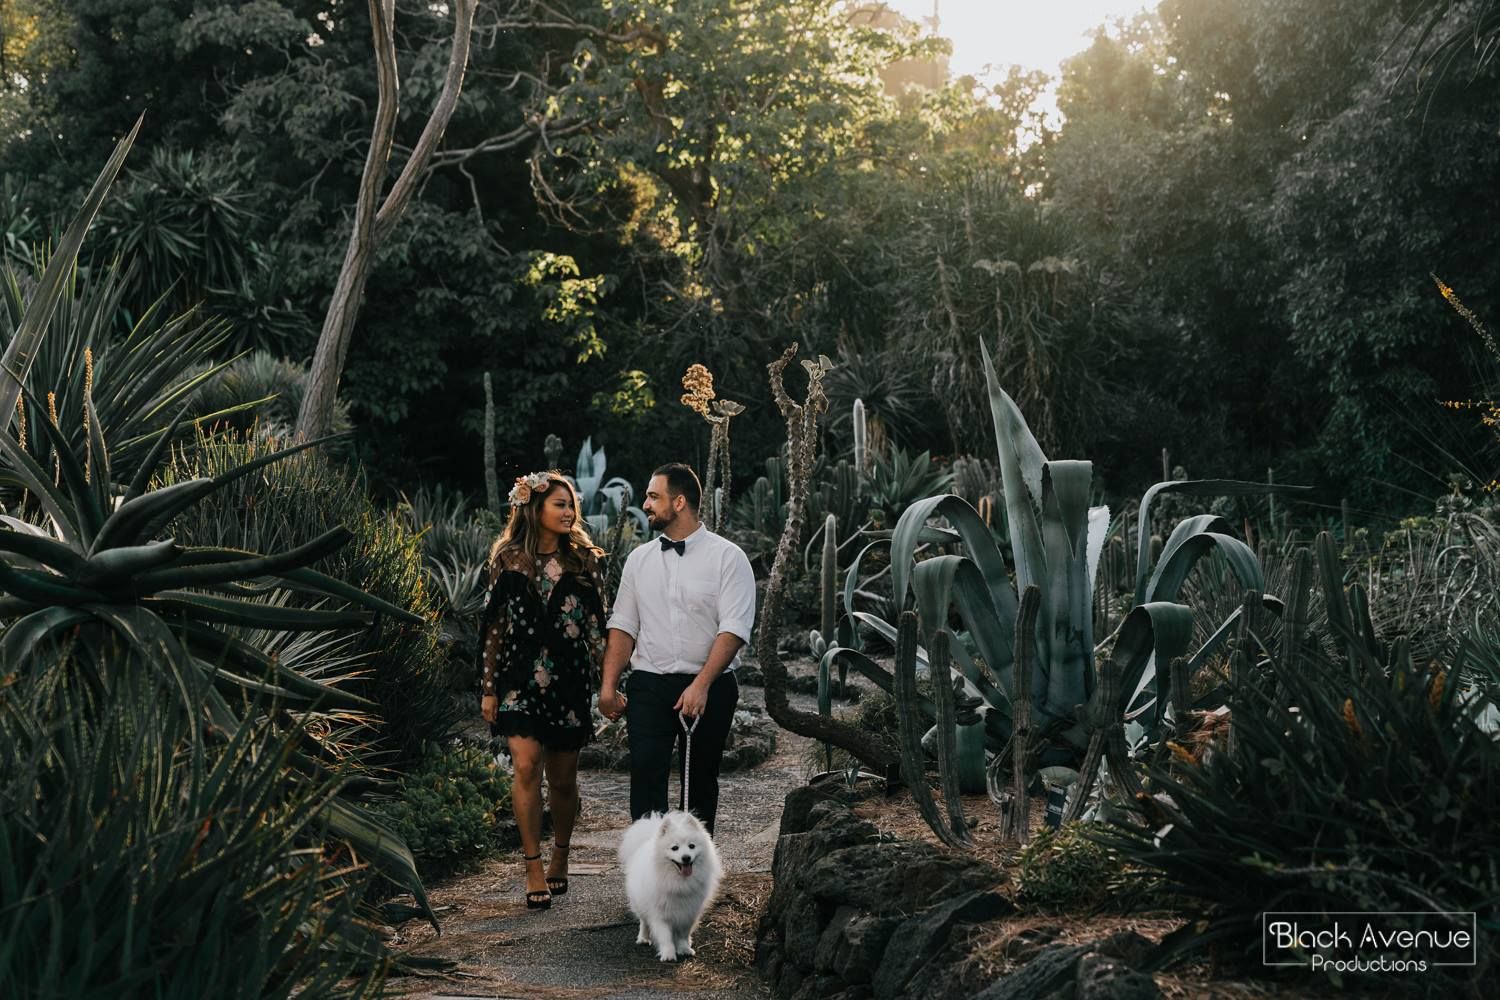 newly engaged lovers walking their dog in cactus garden in Melbourne captured by Black Avenue Productions